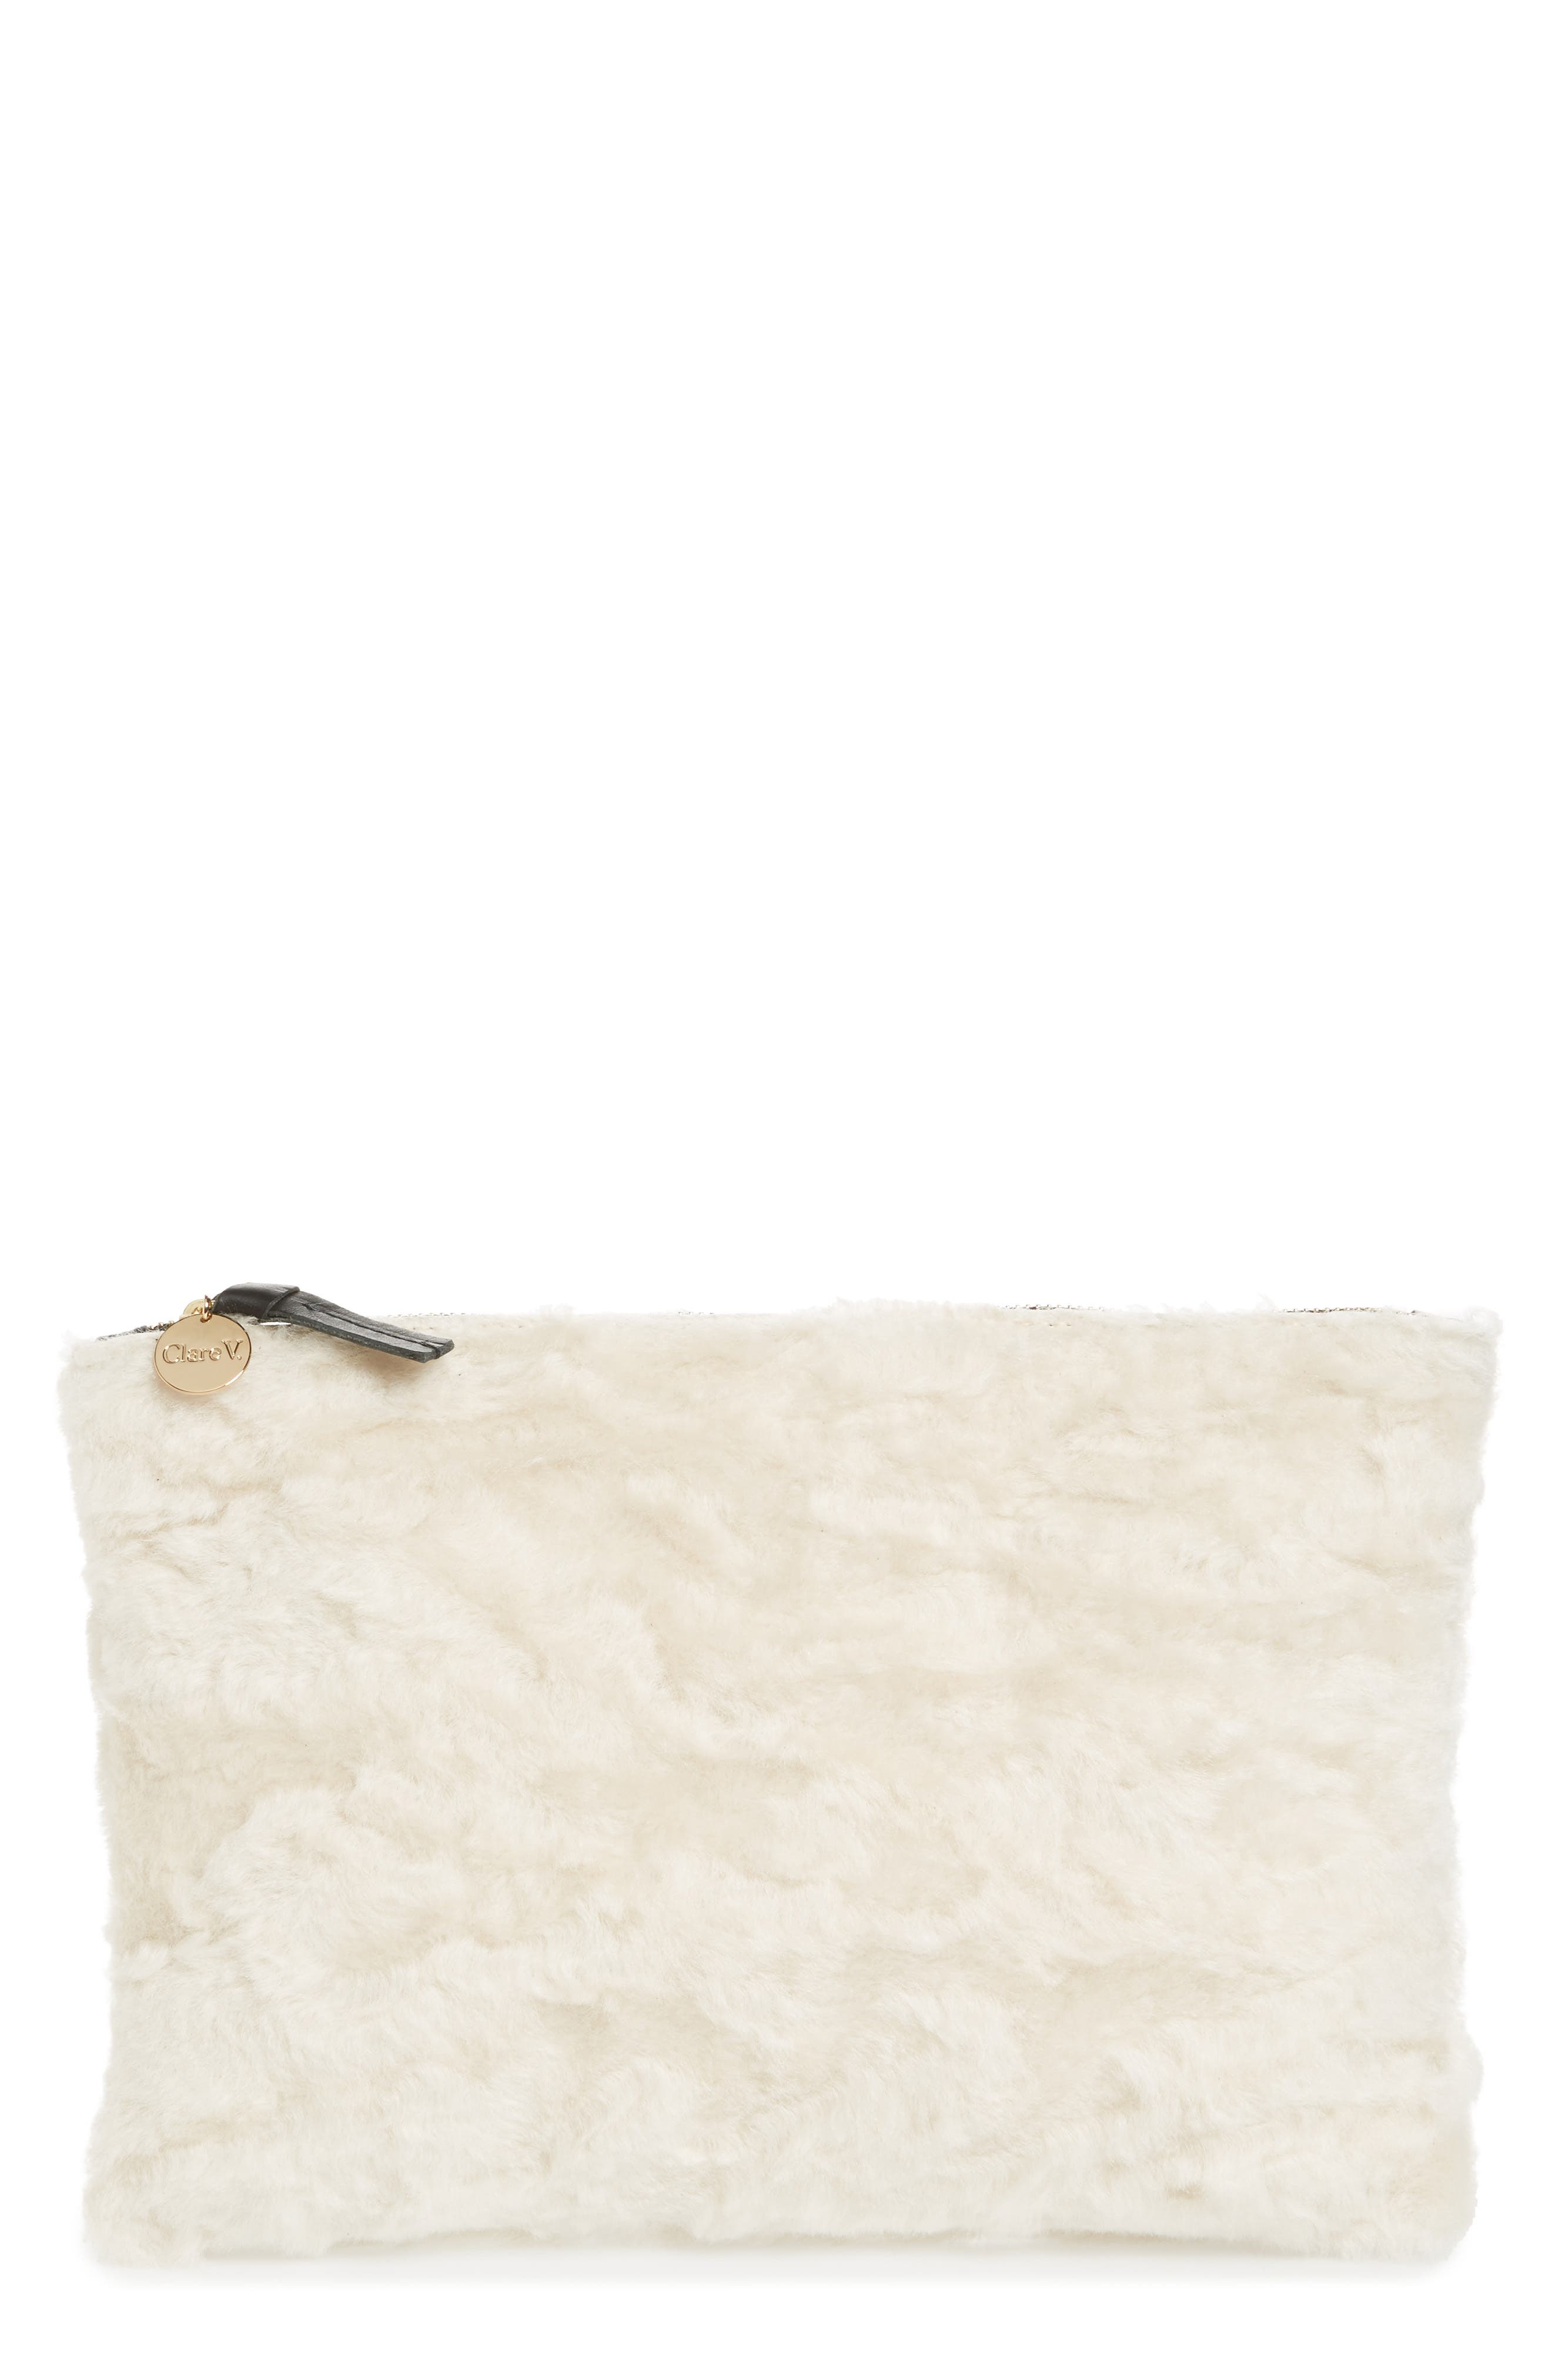 Alternate Image 1 Selected - Clare V. Genuine Shearling Flat Clutch